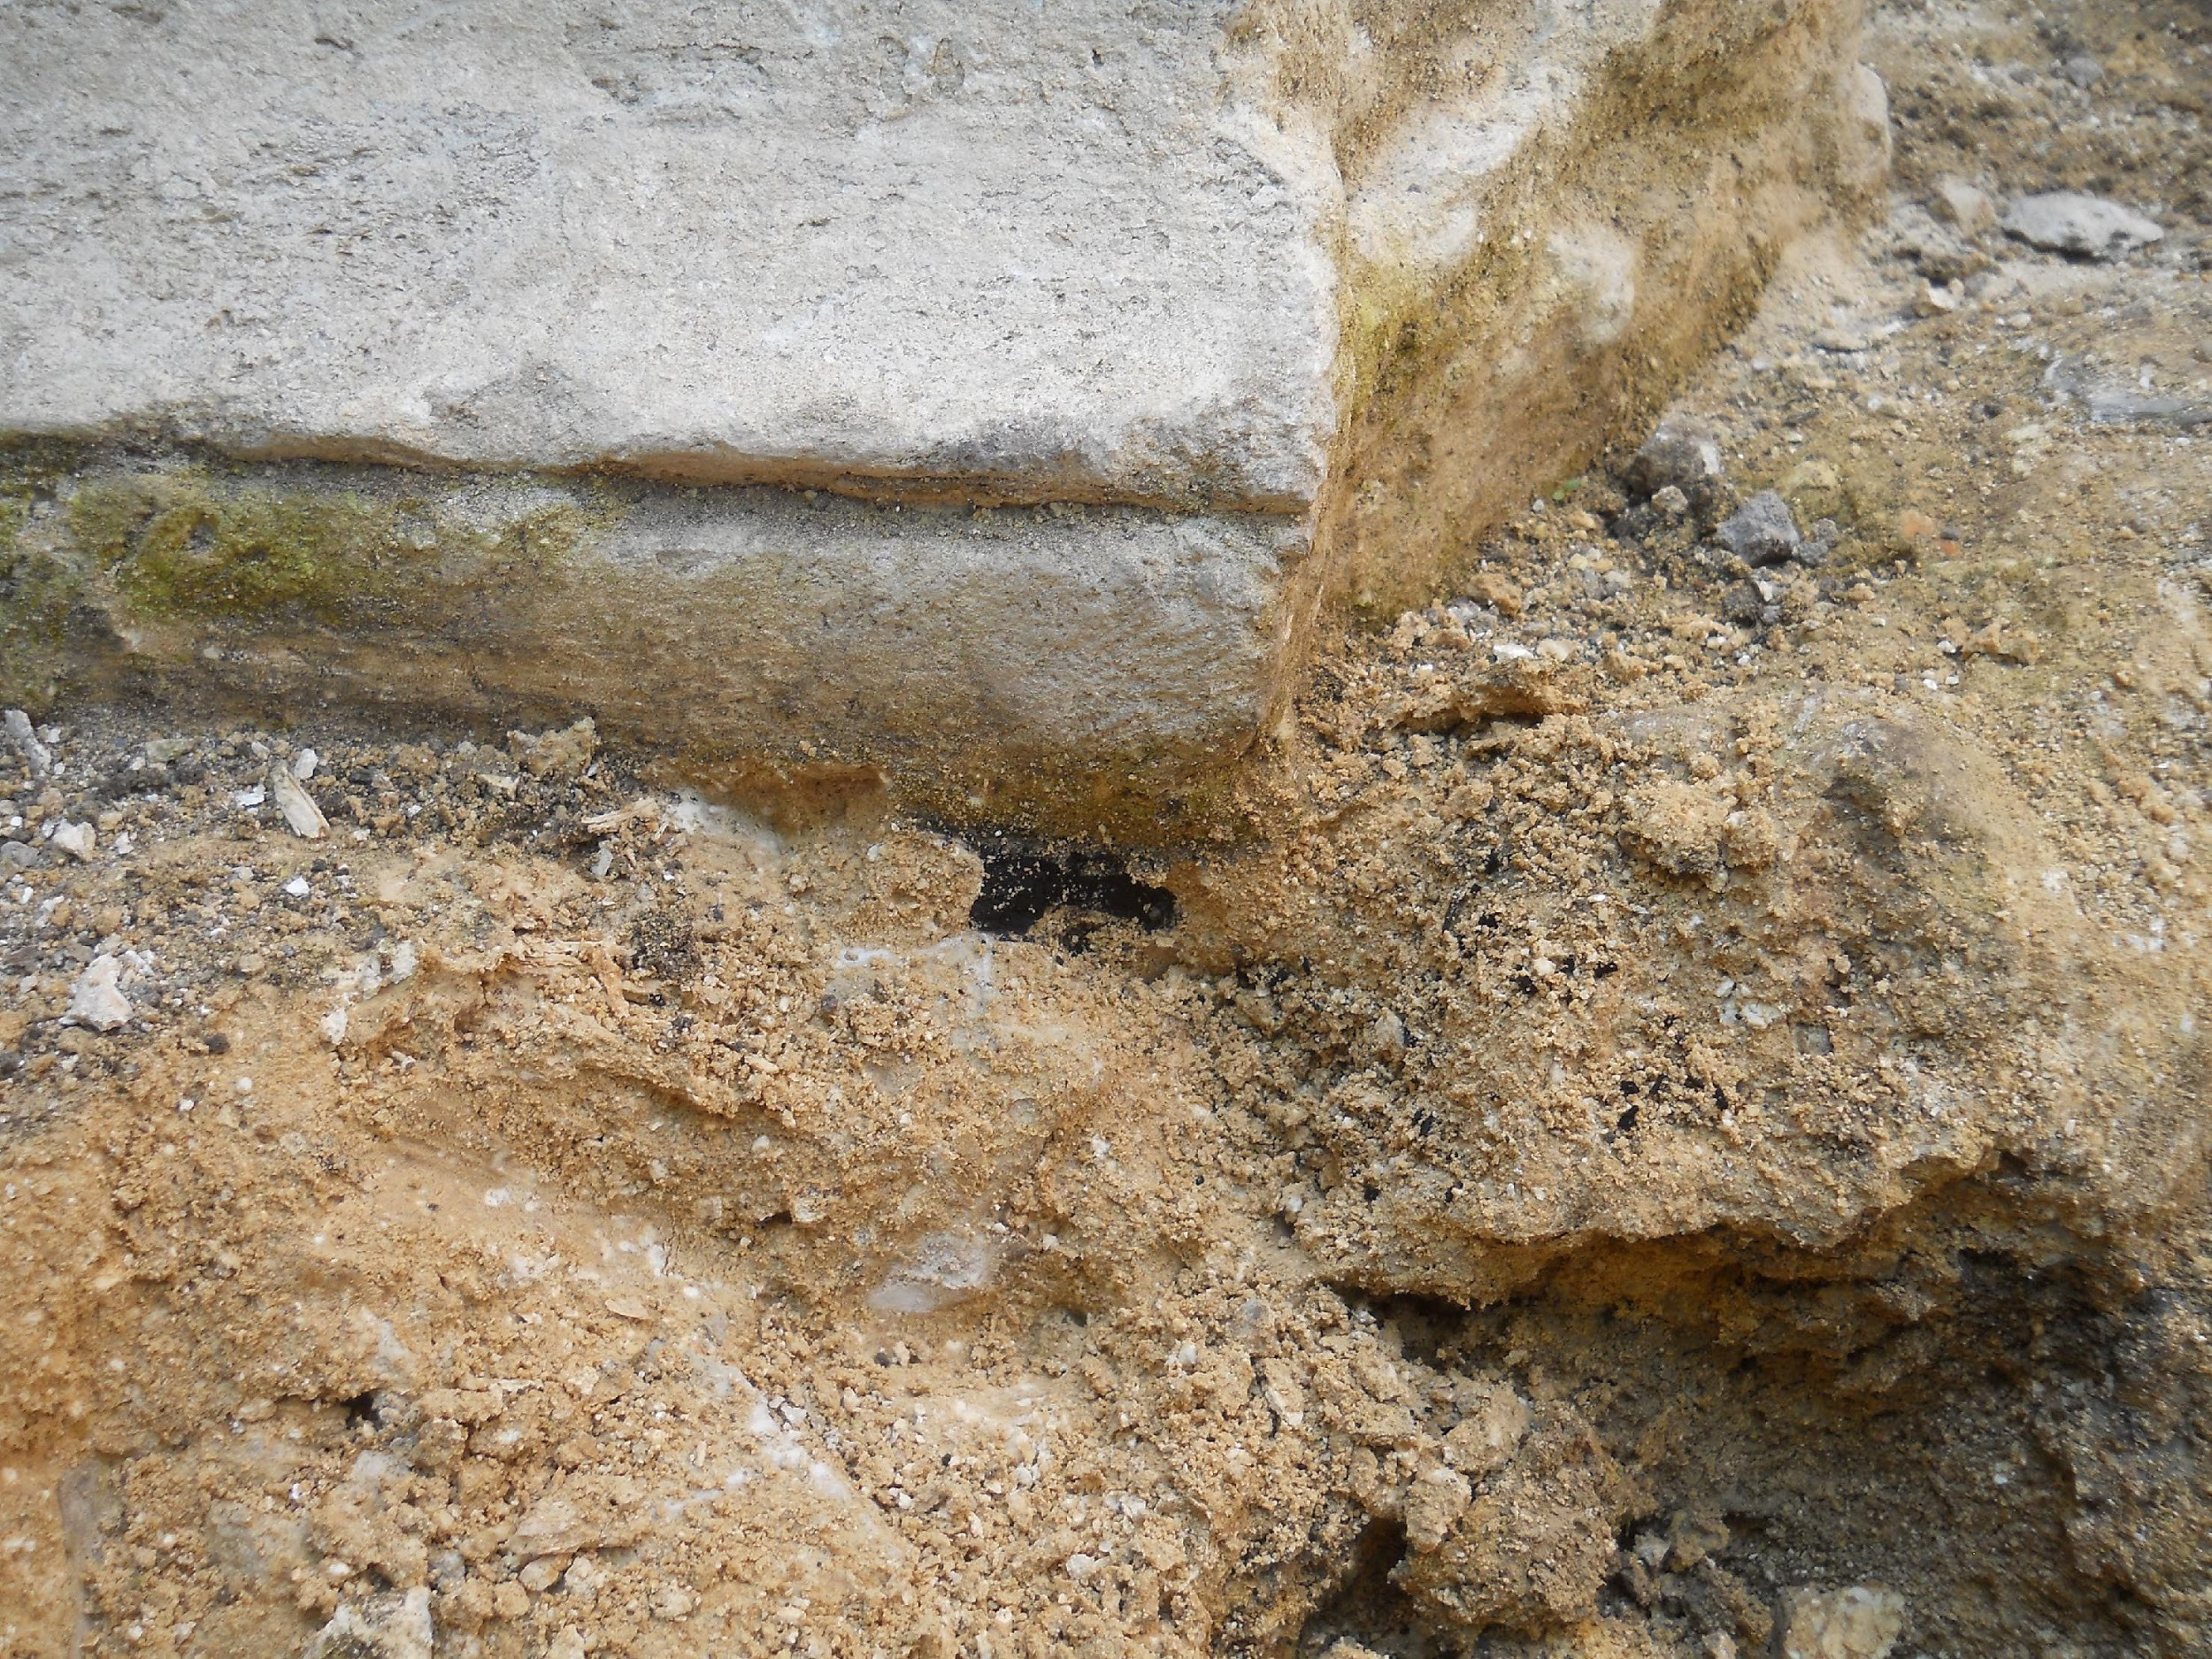 One of the reused abaci showing charcoal embedded in the mortar layer